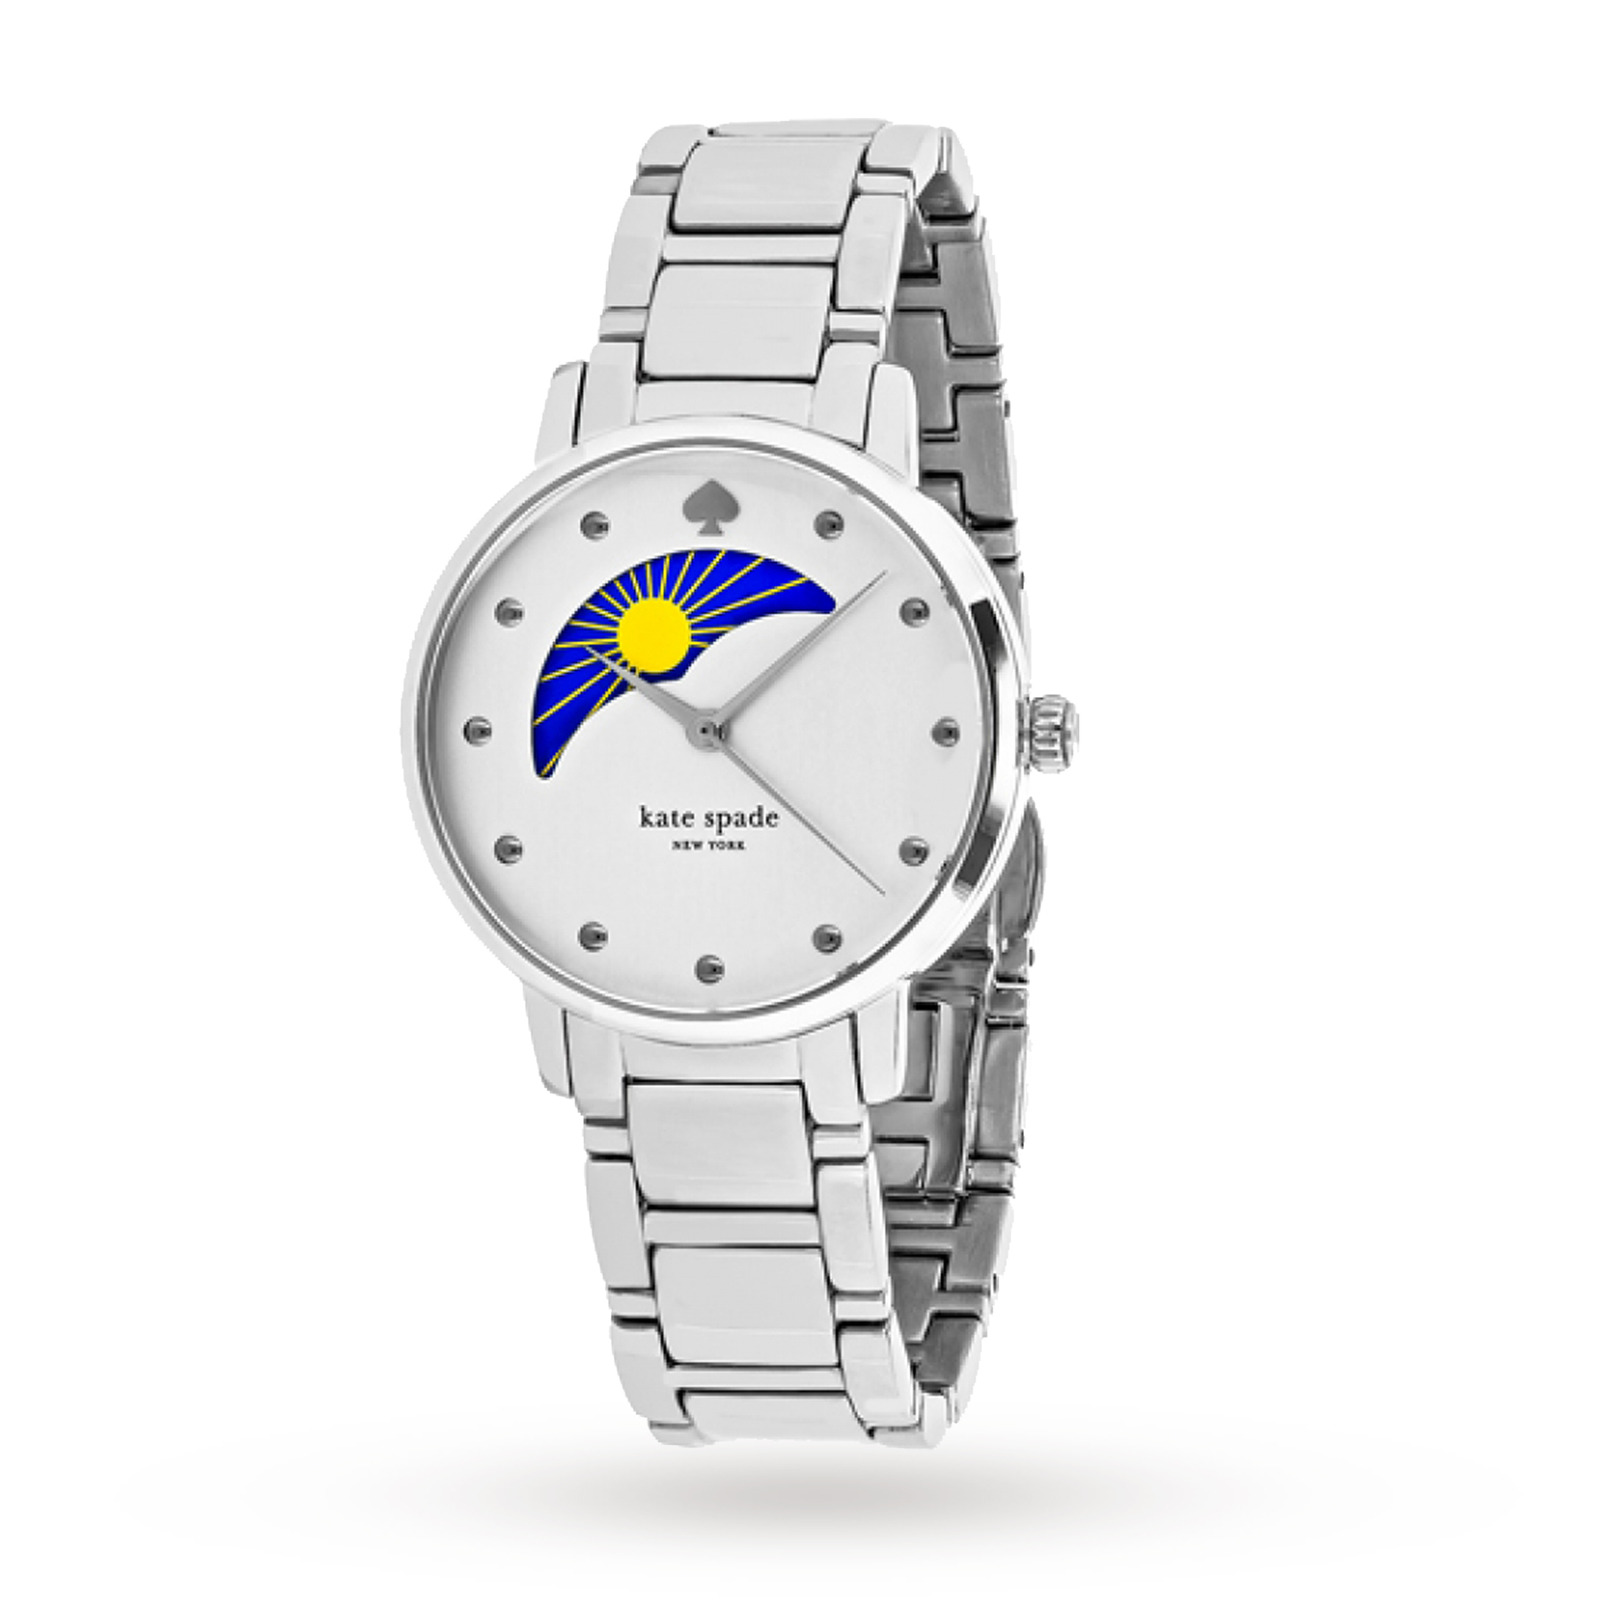 Kate Spade New York Ladies Gramercy Watch